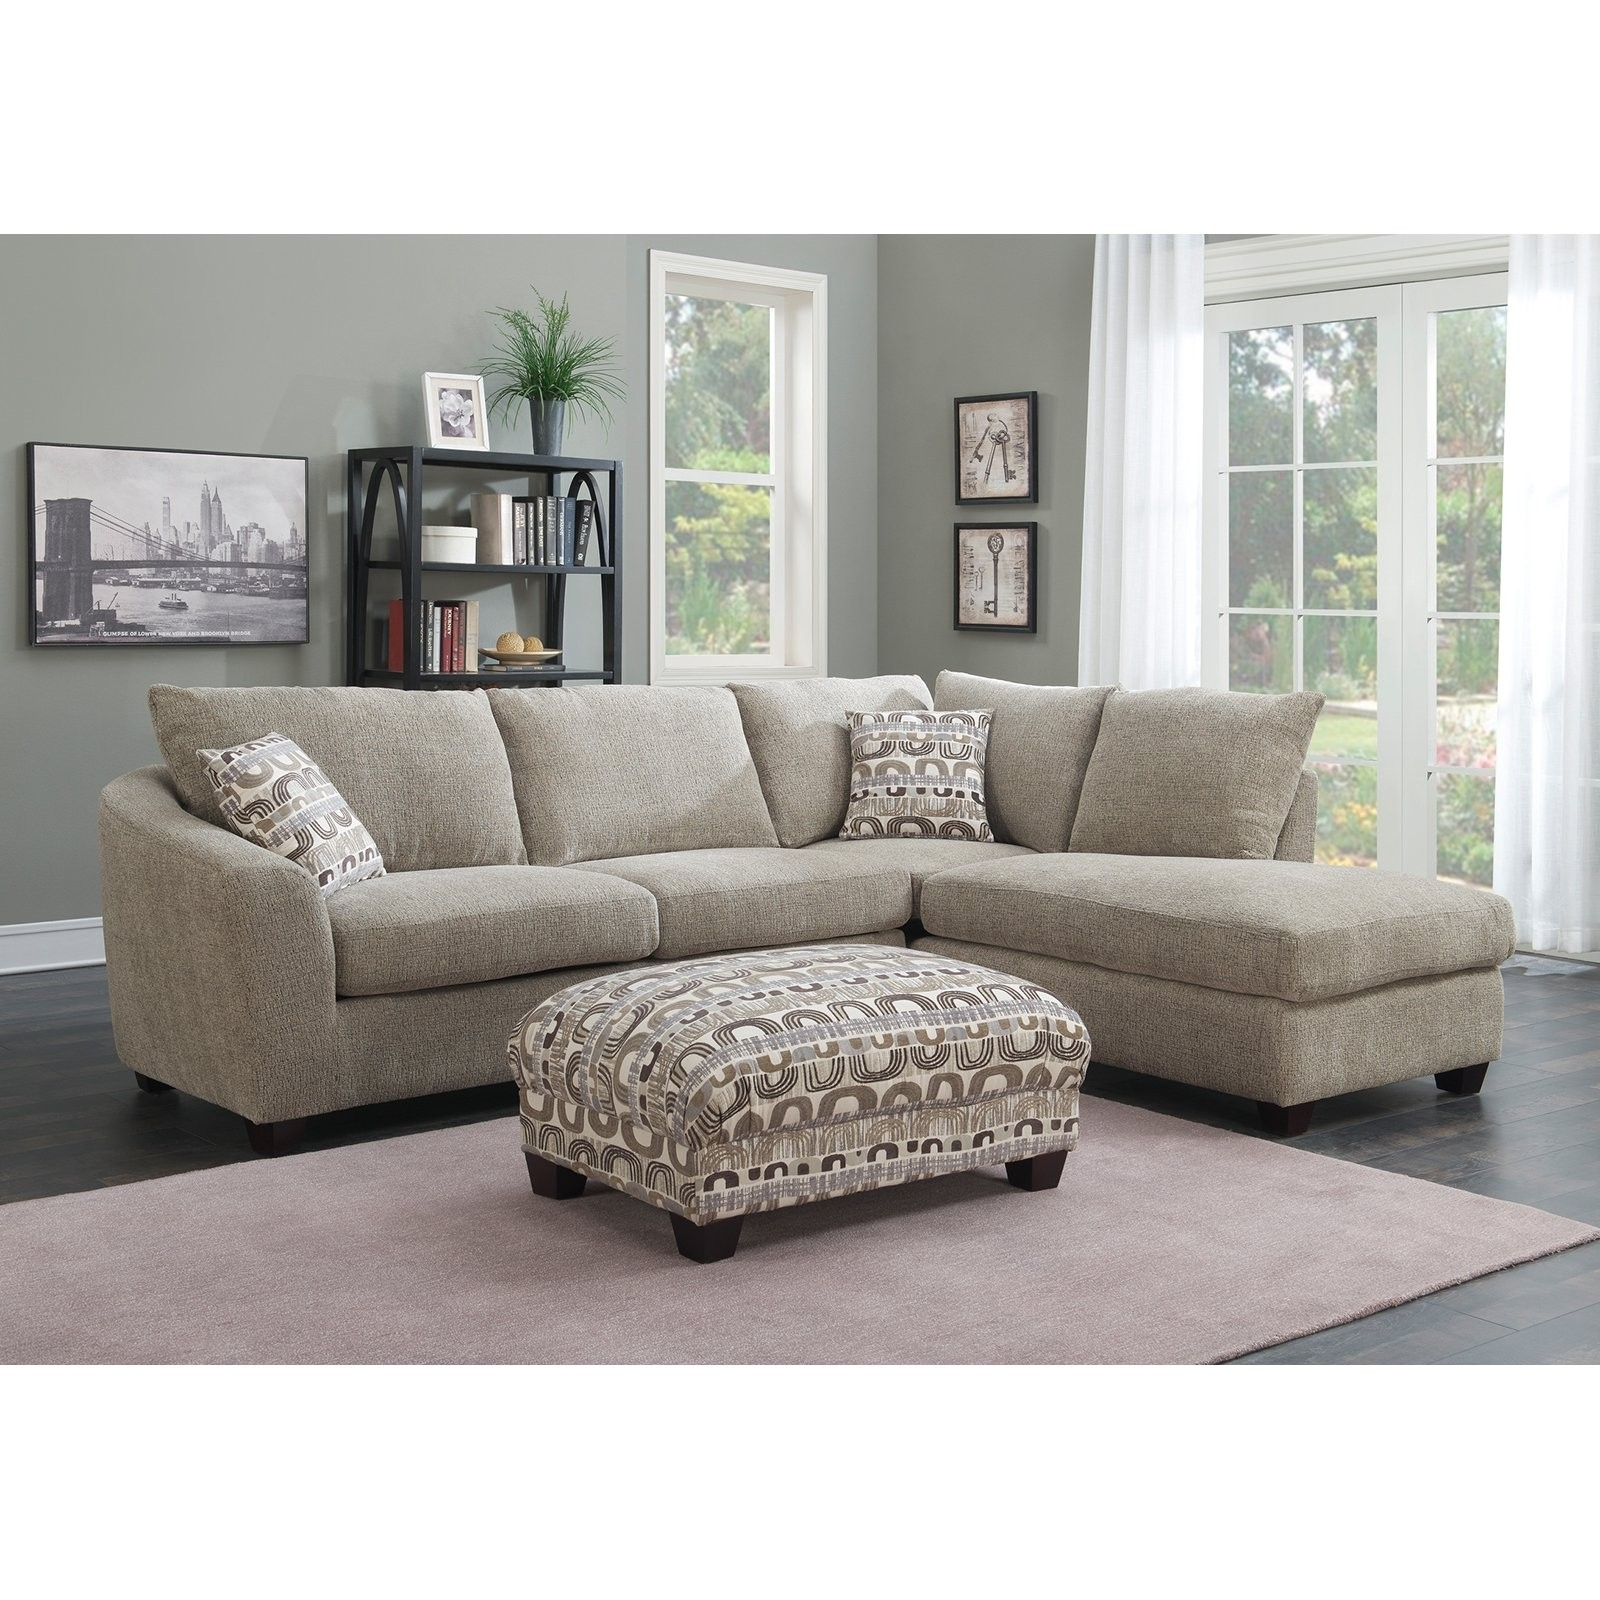 2 Piece Sectional With Chaise Delano W Laf Oversized Living Spaces With Delano 2 Piece Sectionals With Raf Oversized Chaise (Image 3 of 25)